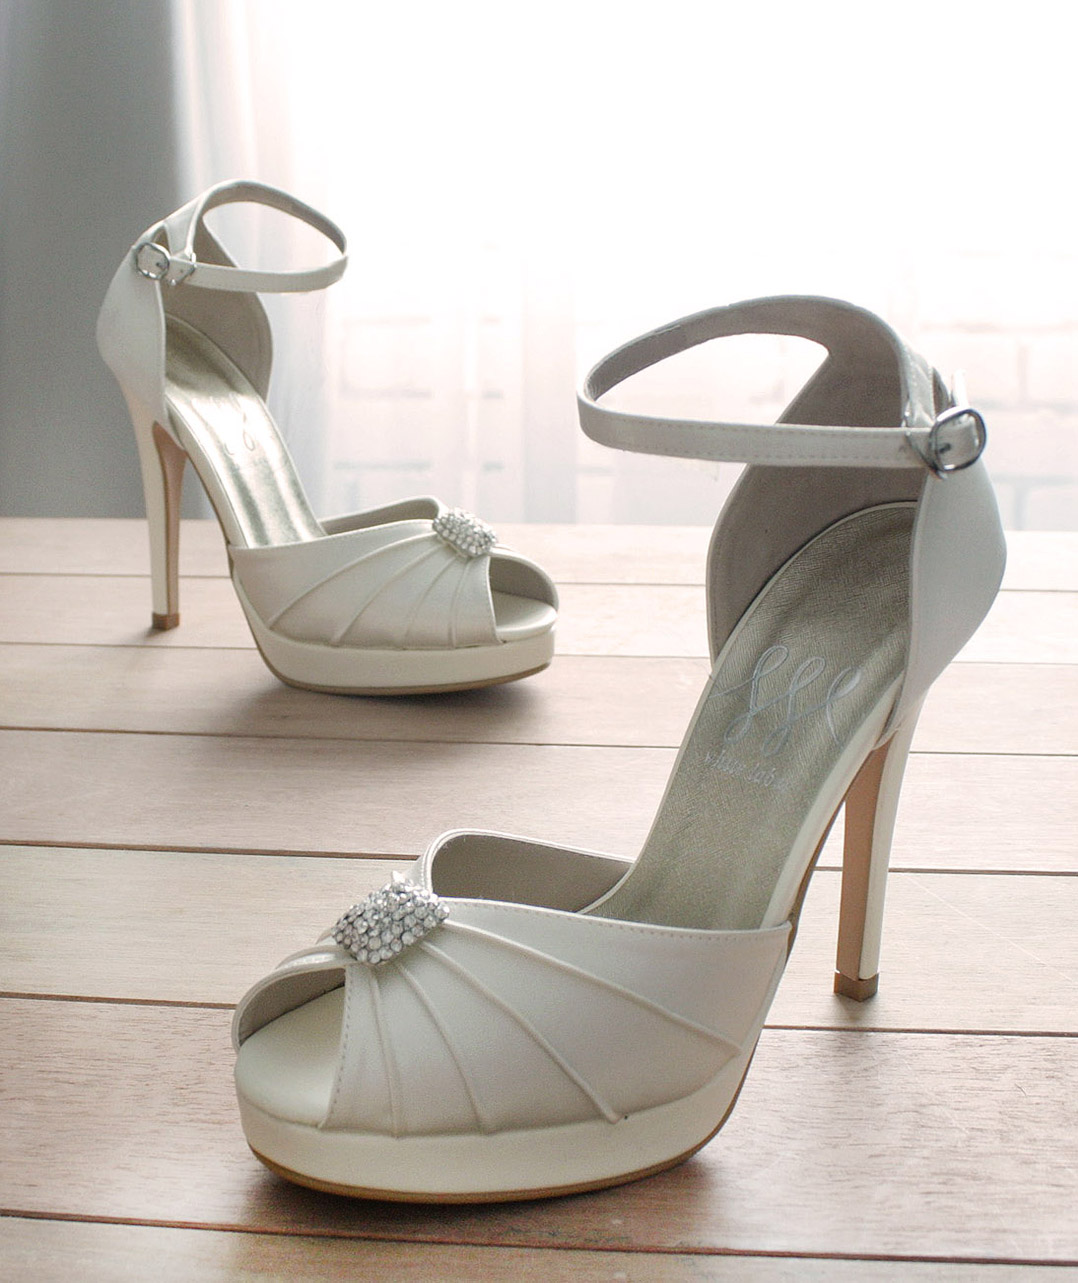 Bridal Shoes Usa: White Label Bridal Shoes: ♥ Dior